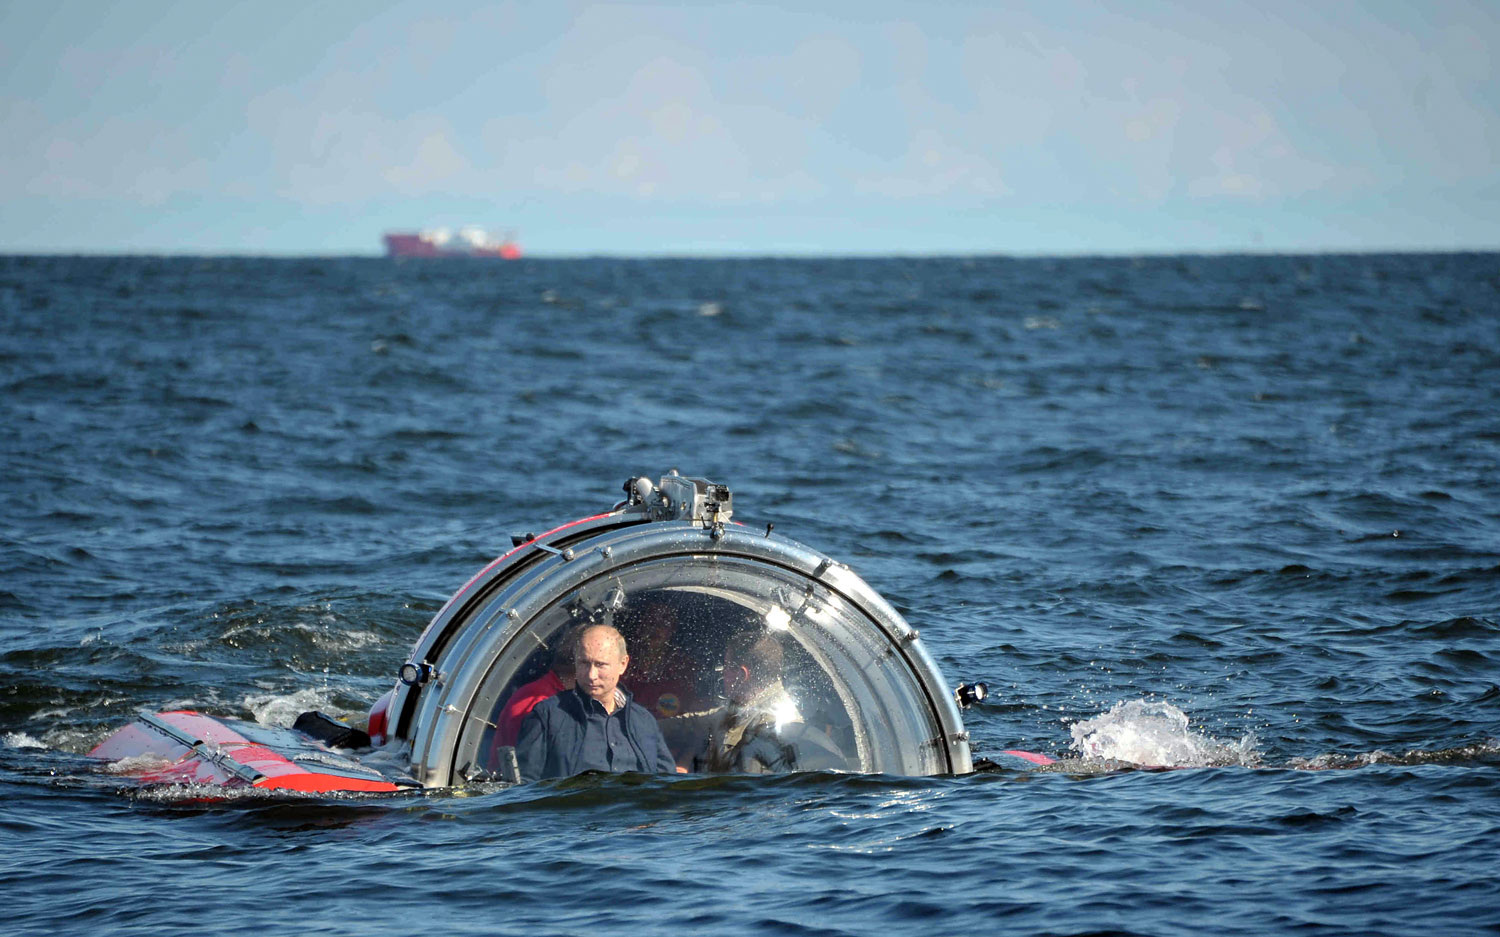 Russia's President Vladimir Putin submerges on board a C-Explorer 5 submersible to explore the sunken Russian Imperial Navy fregate Oleg, in the Gulf of Finland, July 15, 2013.